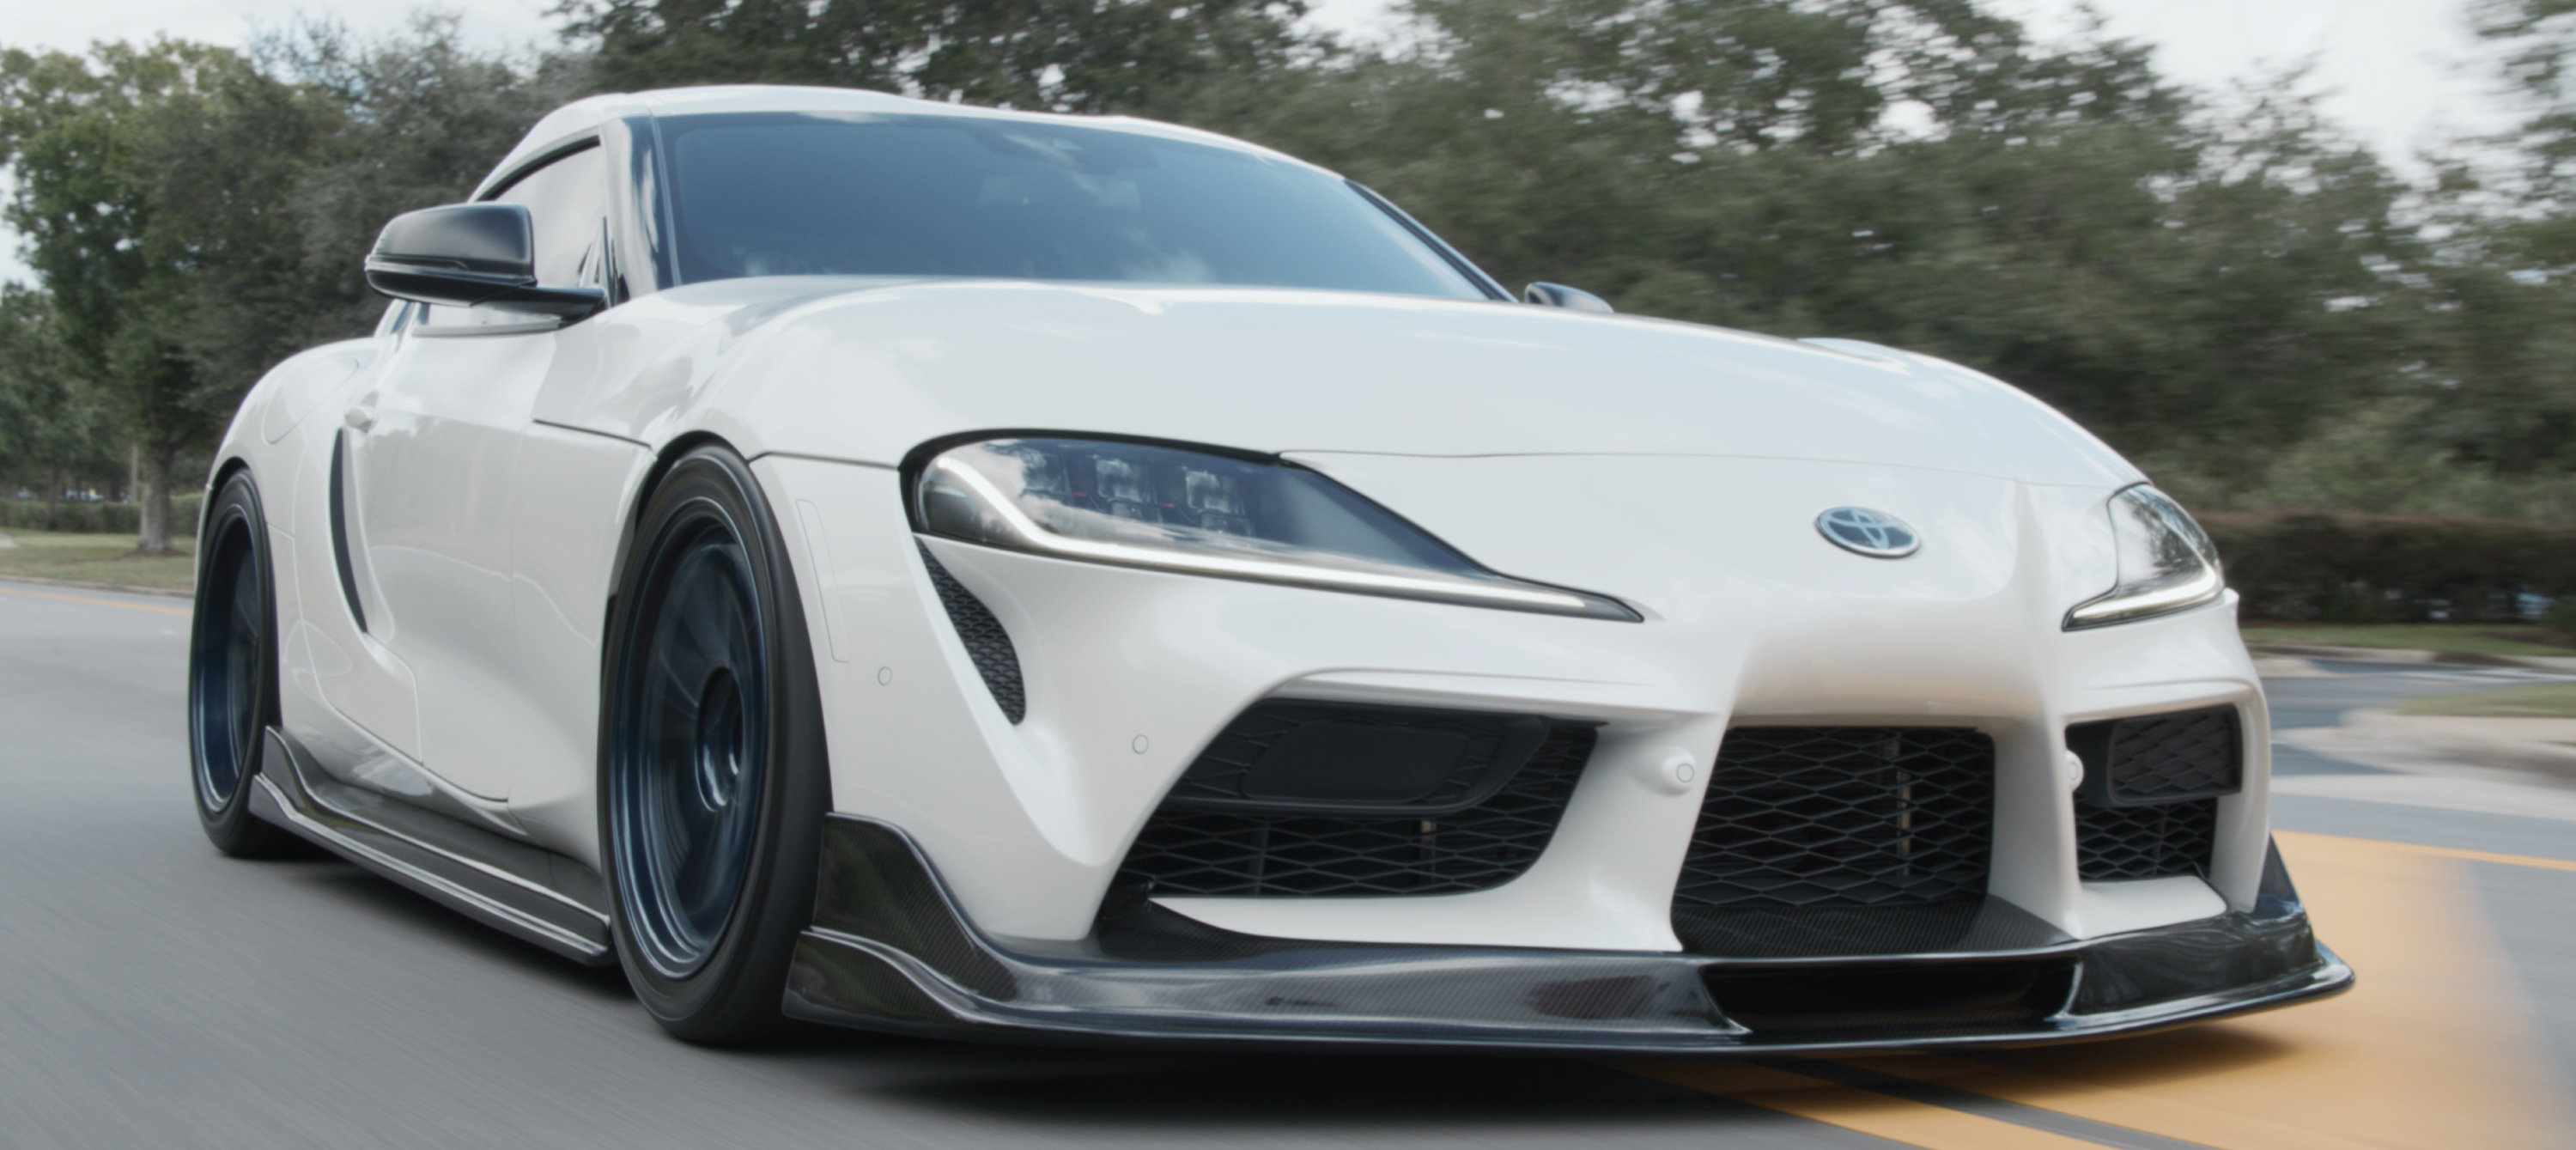 lz-2020-supra-about-the-car.jpg